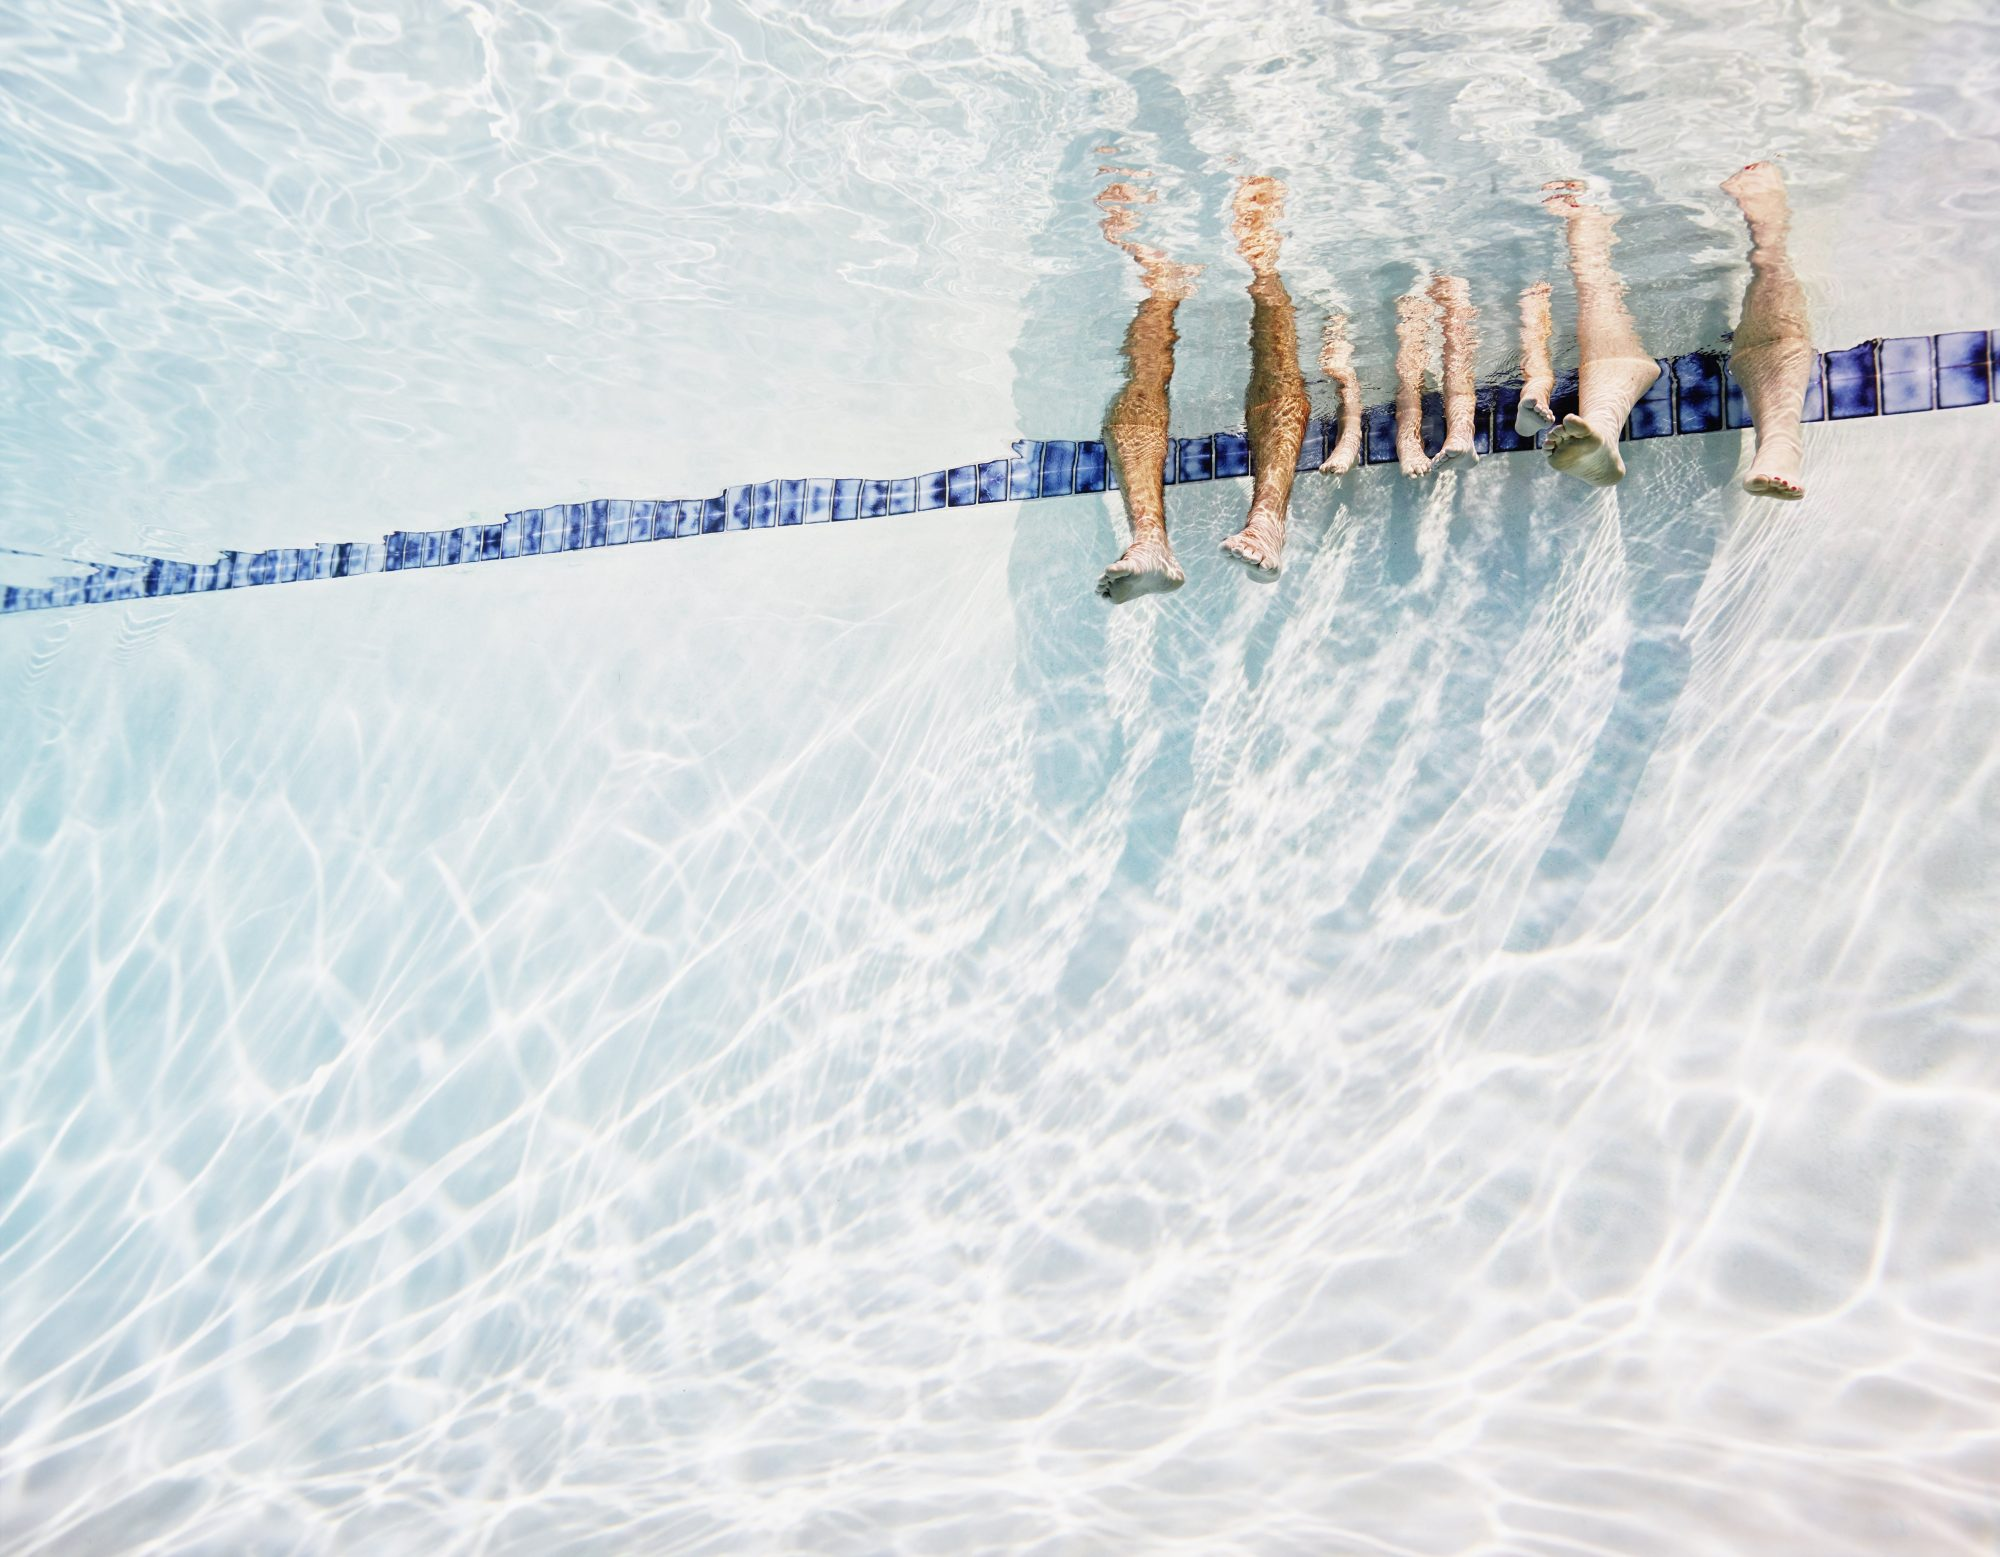 Family's feet hanging in swimming pool